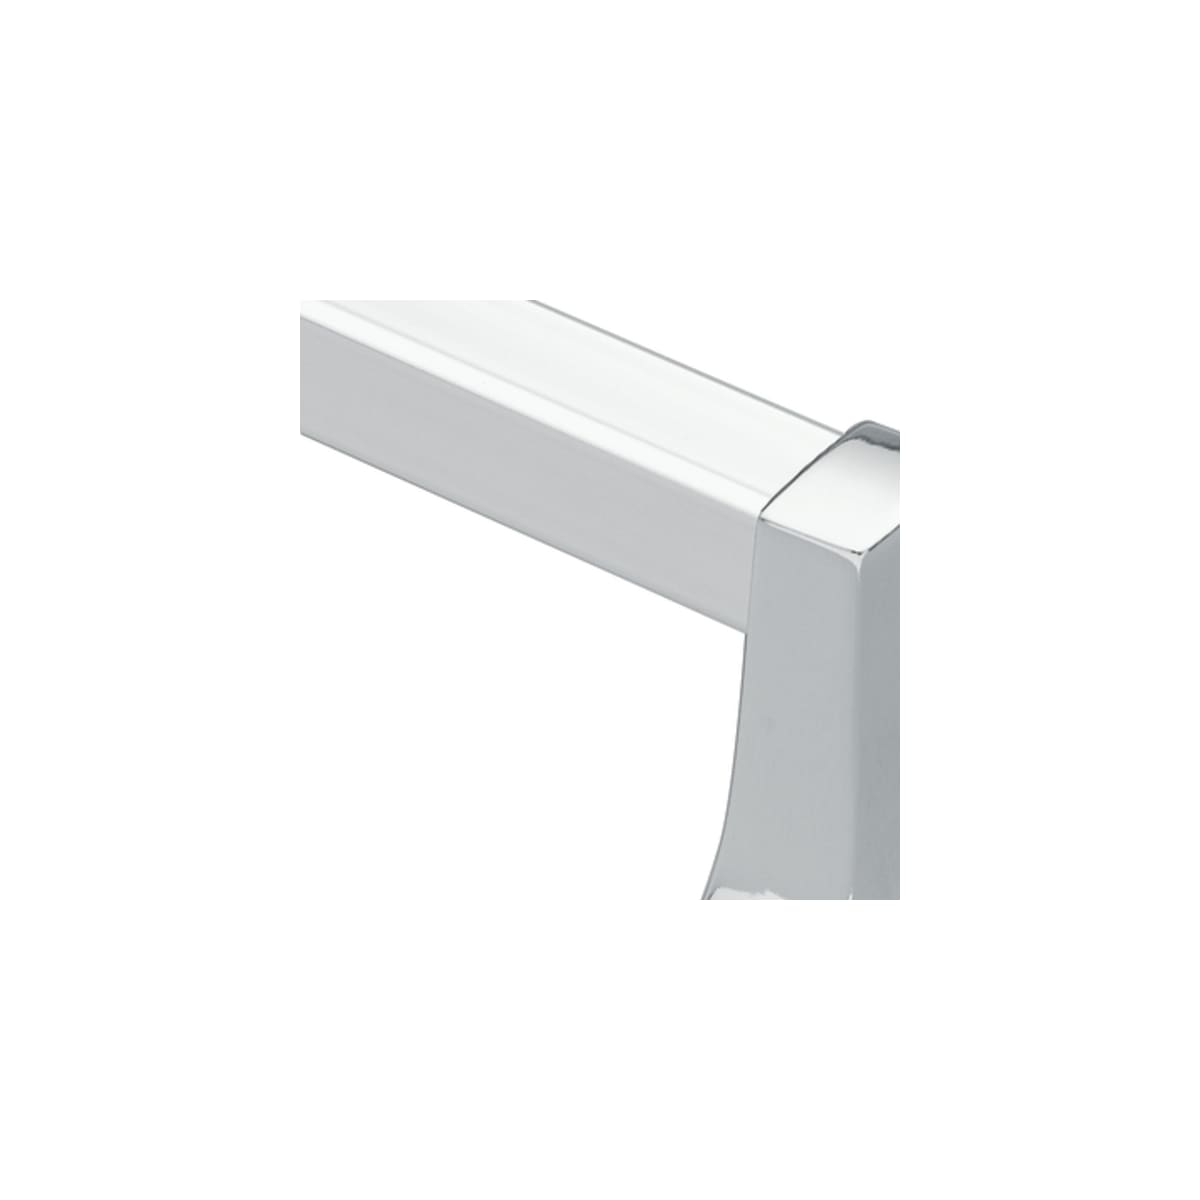 Moen 23424ss Stainless 24 Towel Bar Only From The Donner Stainless Steel Collection Faucetdirect Com